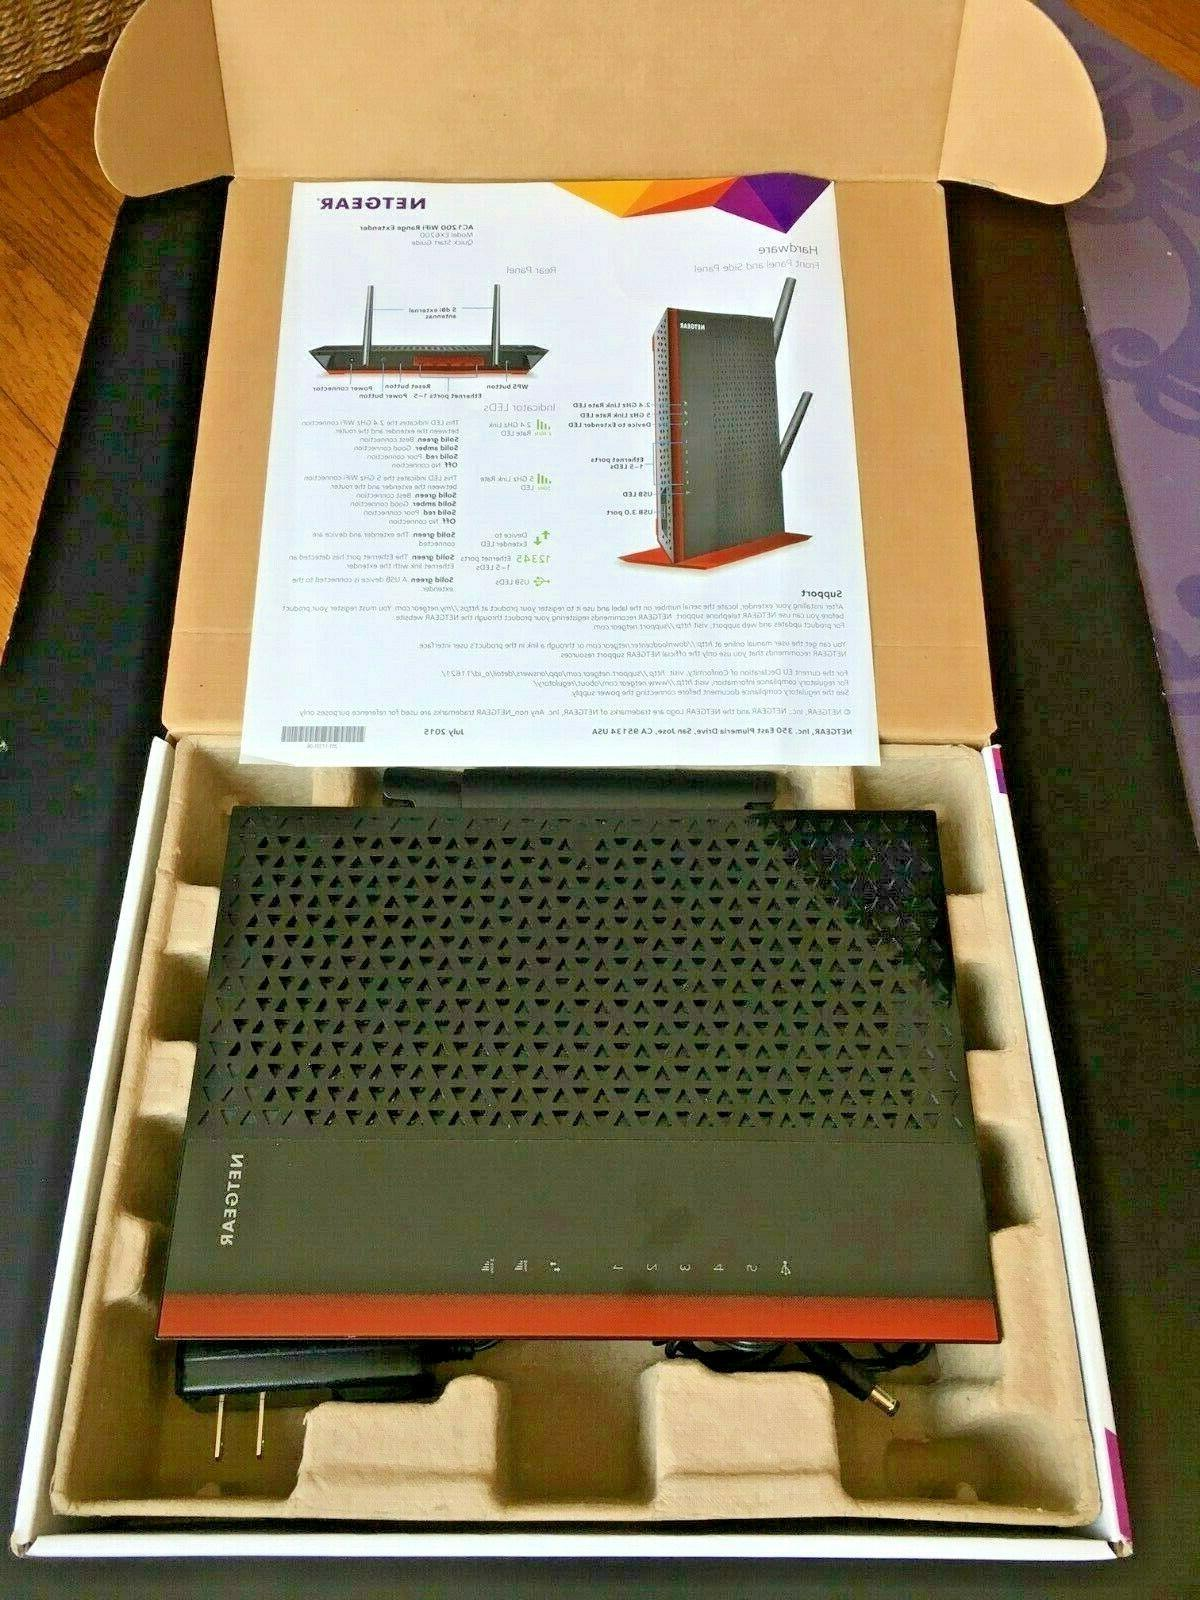 Netgear EX6200 Wireless Range Extender AC1200 BARELY